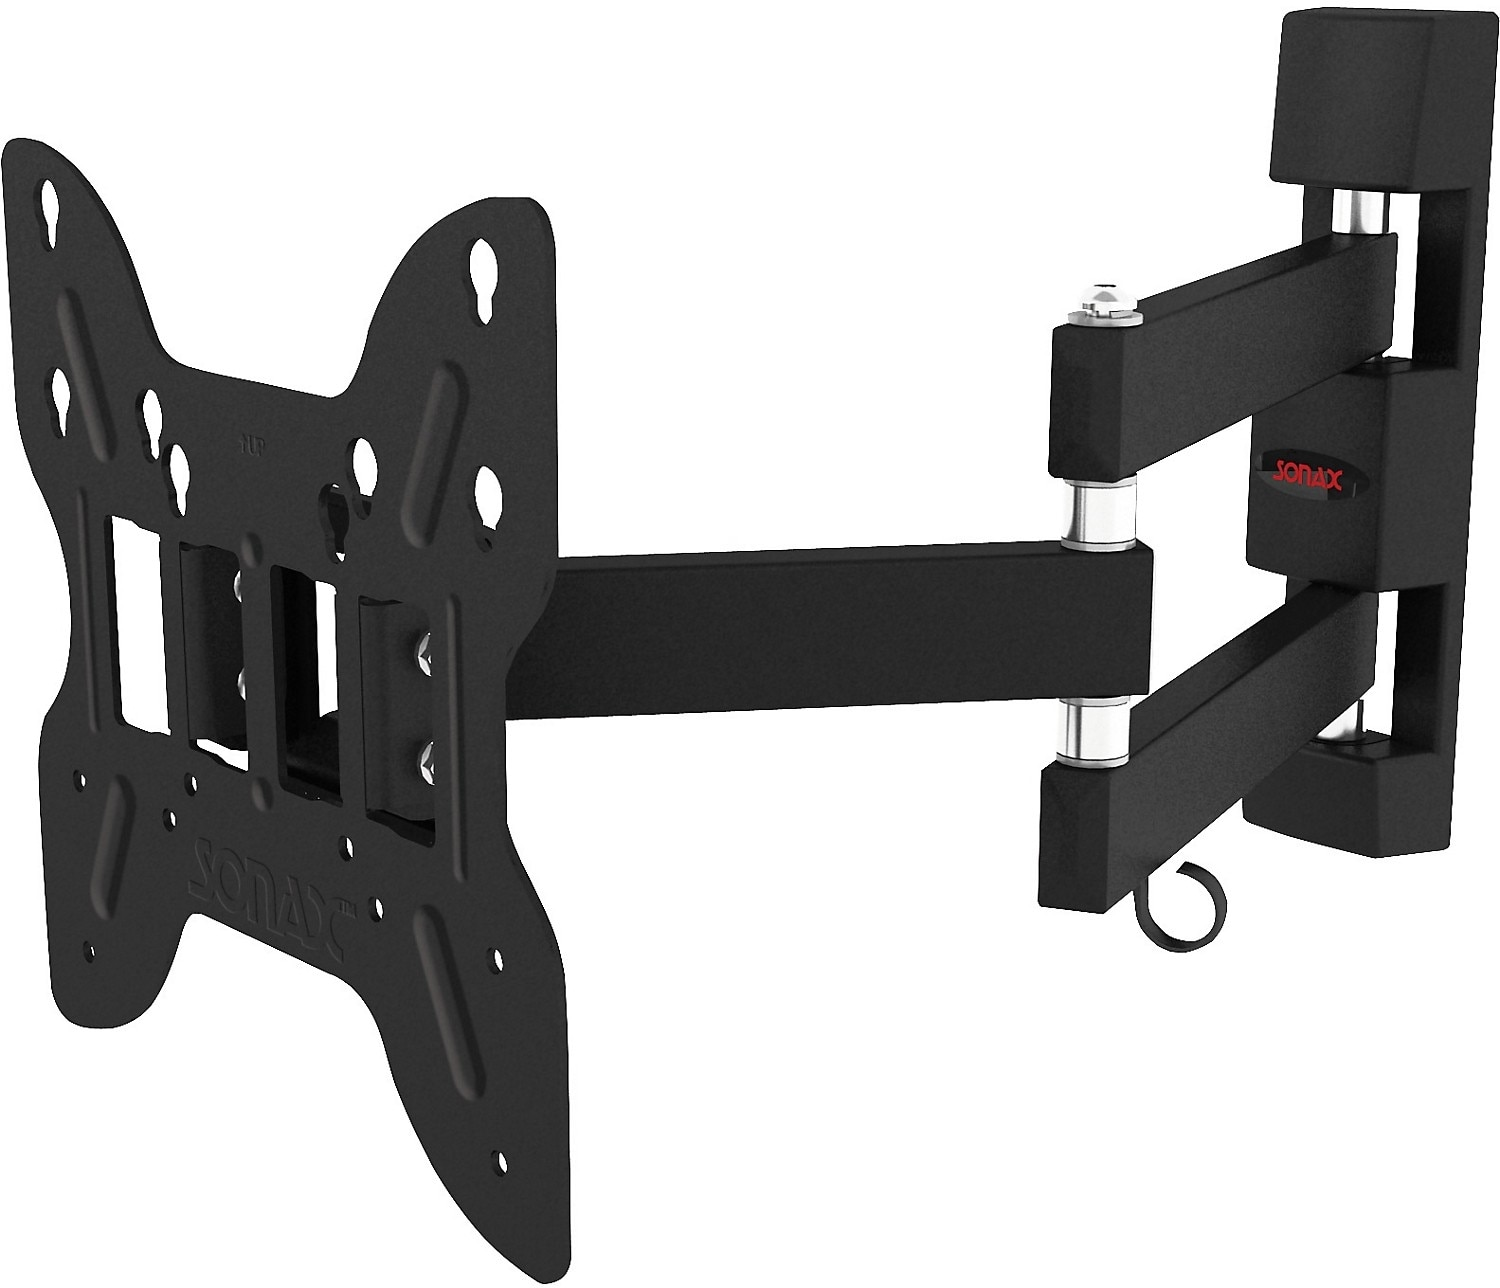 Sonax adjustable 14 40 full motion flat panel tv wall for Motorized full motion tv wall mount